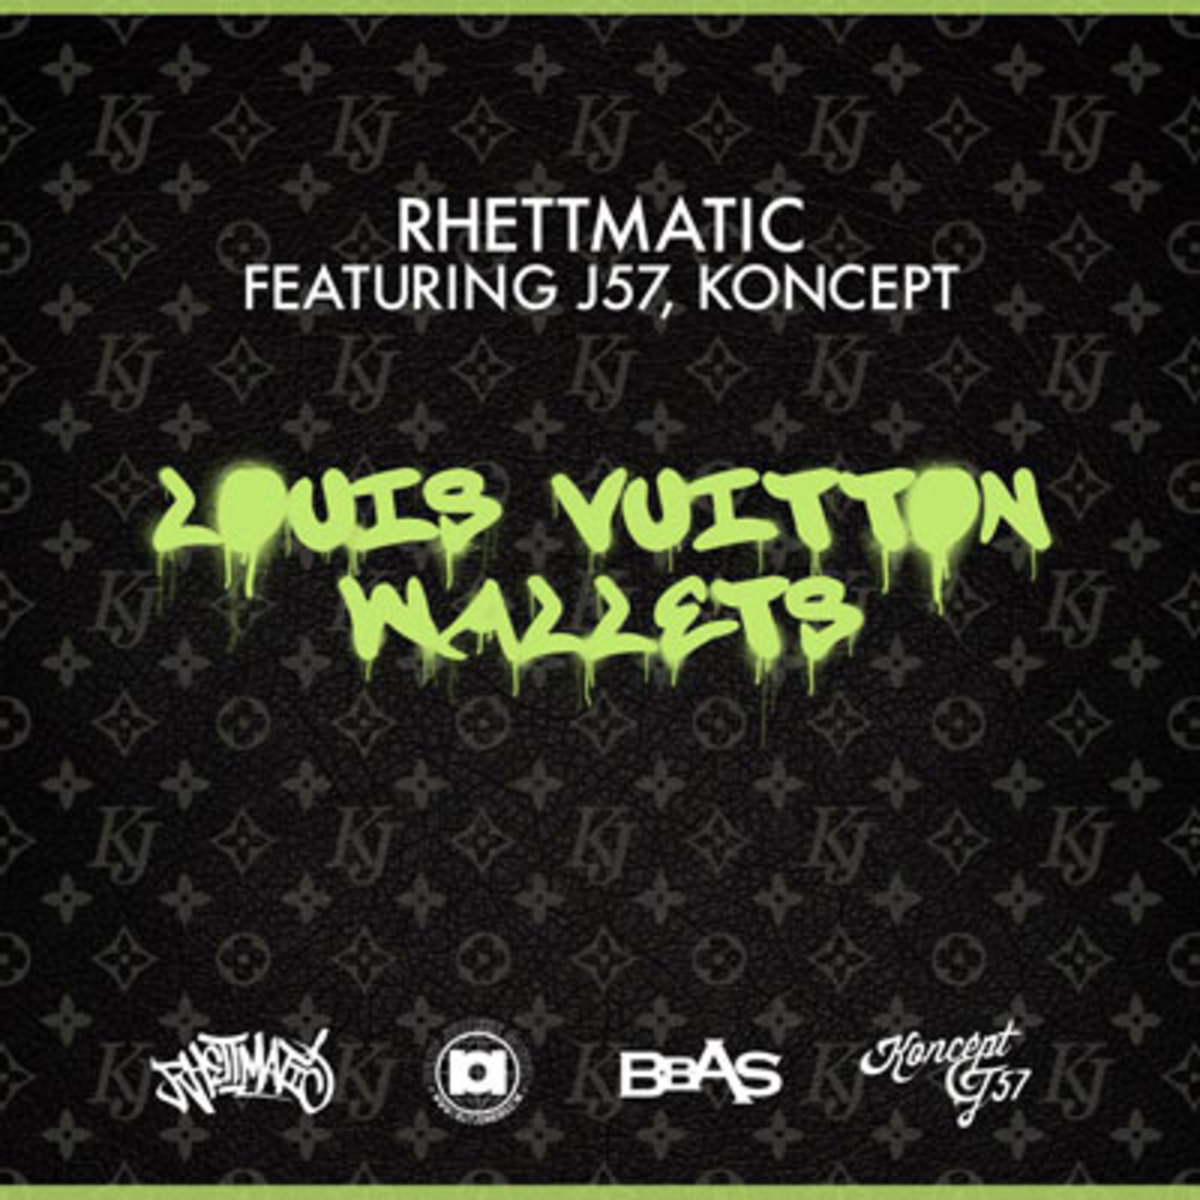 djrhettmatic-louisv.jpg